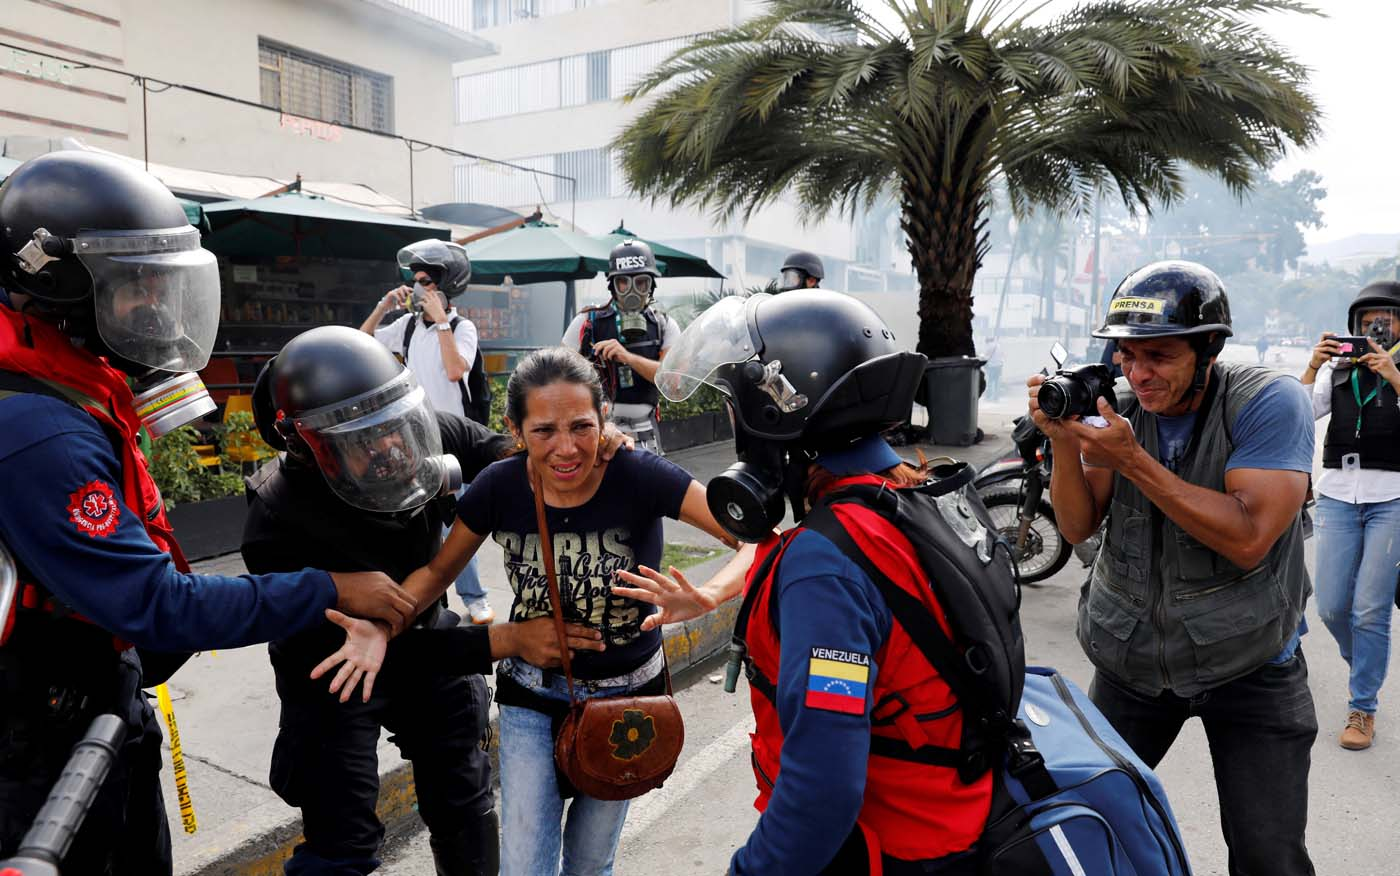 A woman is helped as she leaves a restaurant when smoke from tear gas fired by security forces got inside of it as clashes occured during a rally against Venezuelan President Nicolas Maduro's government in Caracas, Venezuela, July 6, 2017. REUTERS/Andres Martinez Casares